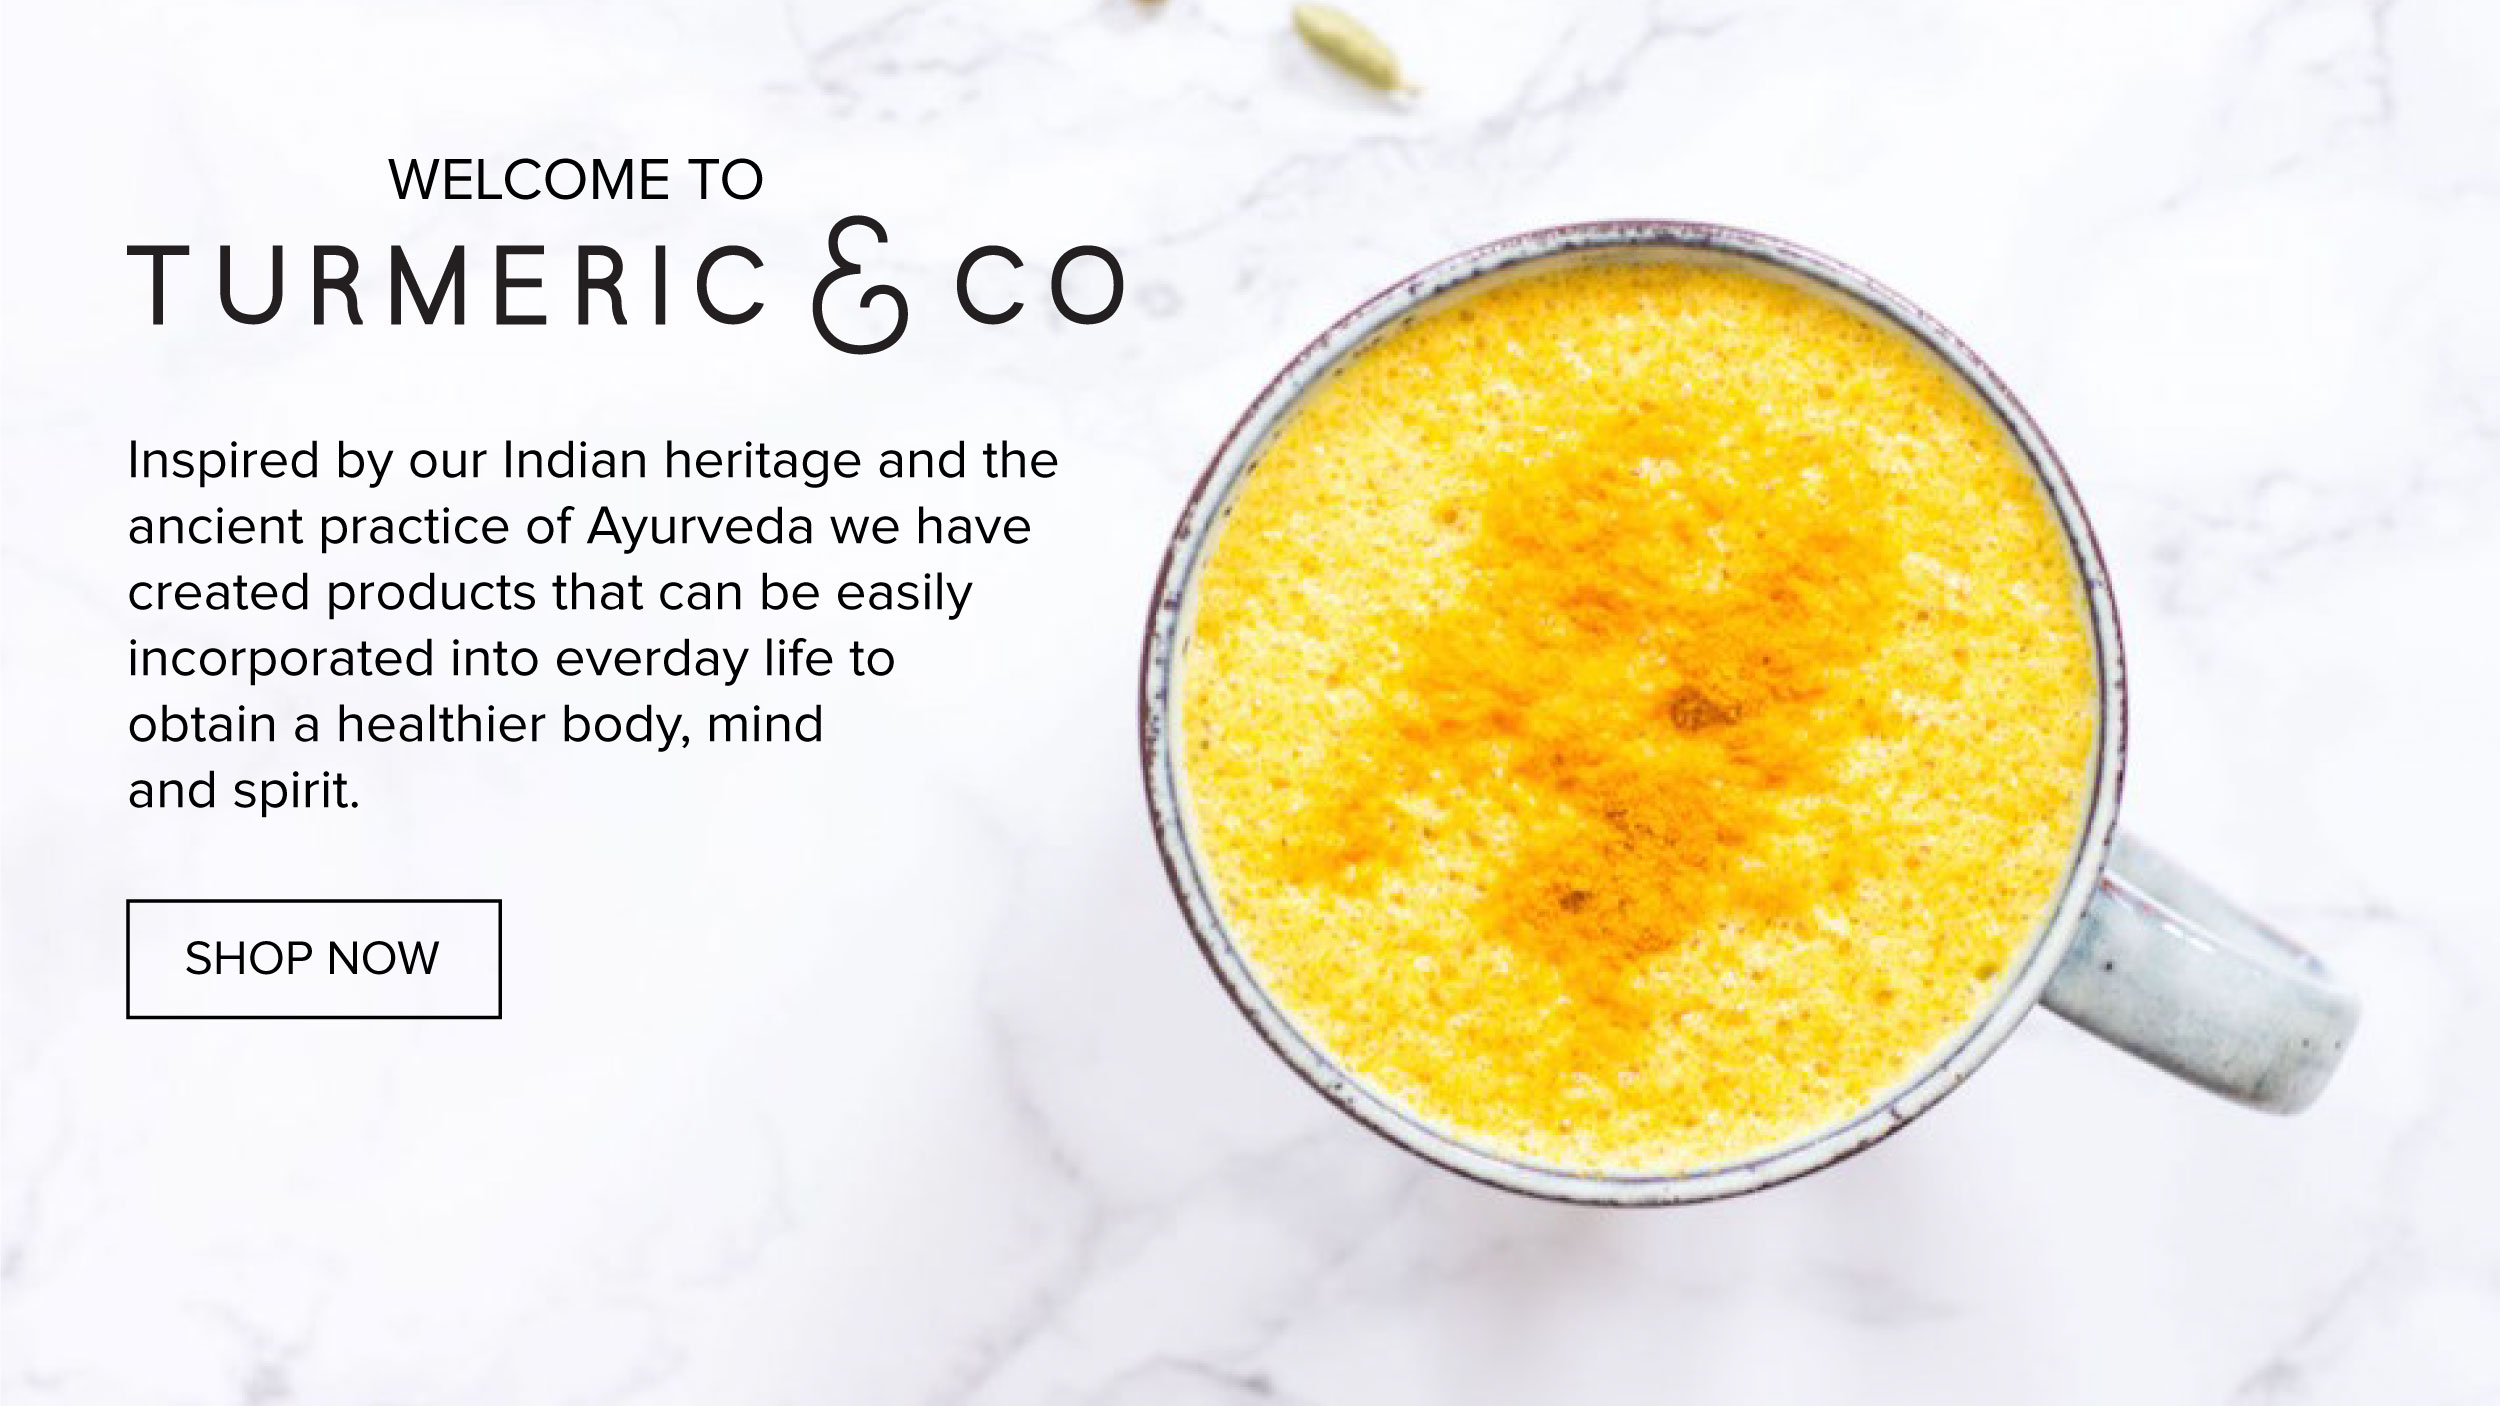 Turmeric-and-Co-Banner.jpg